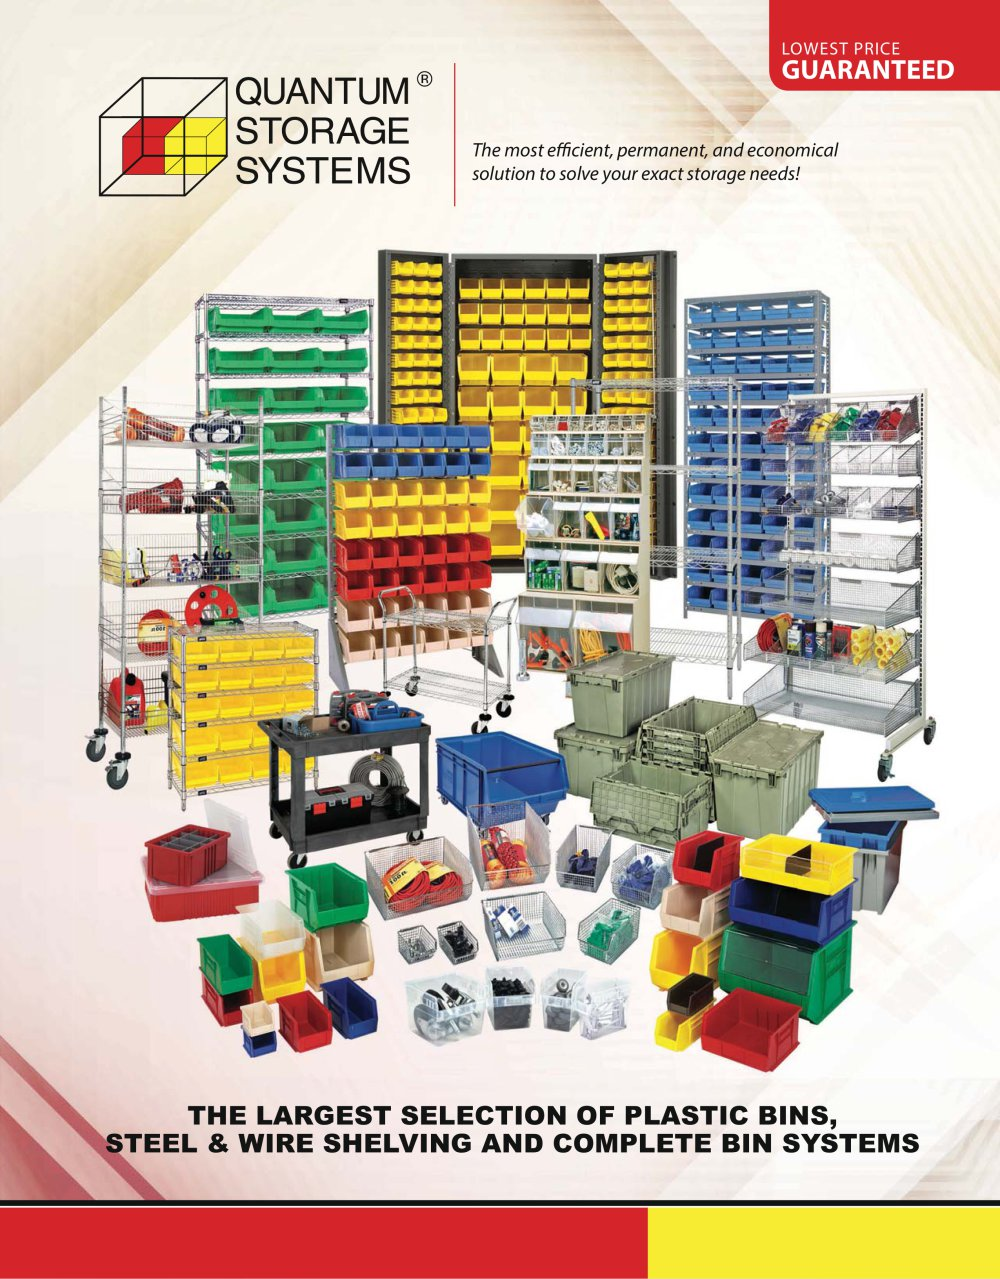 THE LARGEST SELECTION OF PLASTIC BINS, STEEL & WIRE SHELVING AND ...